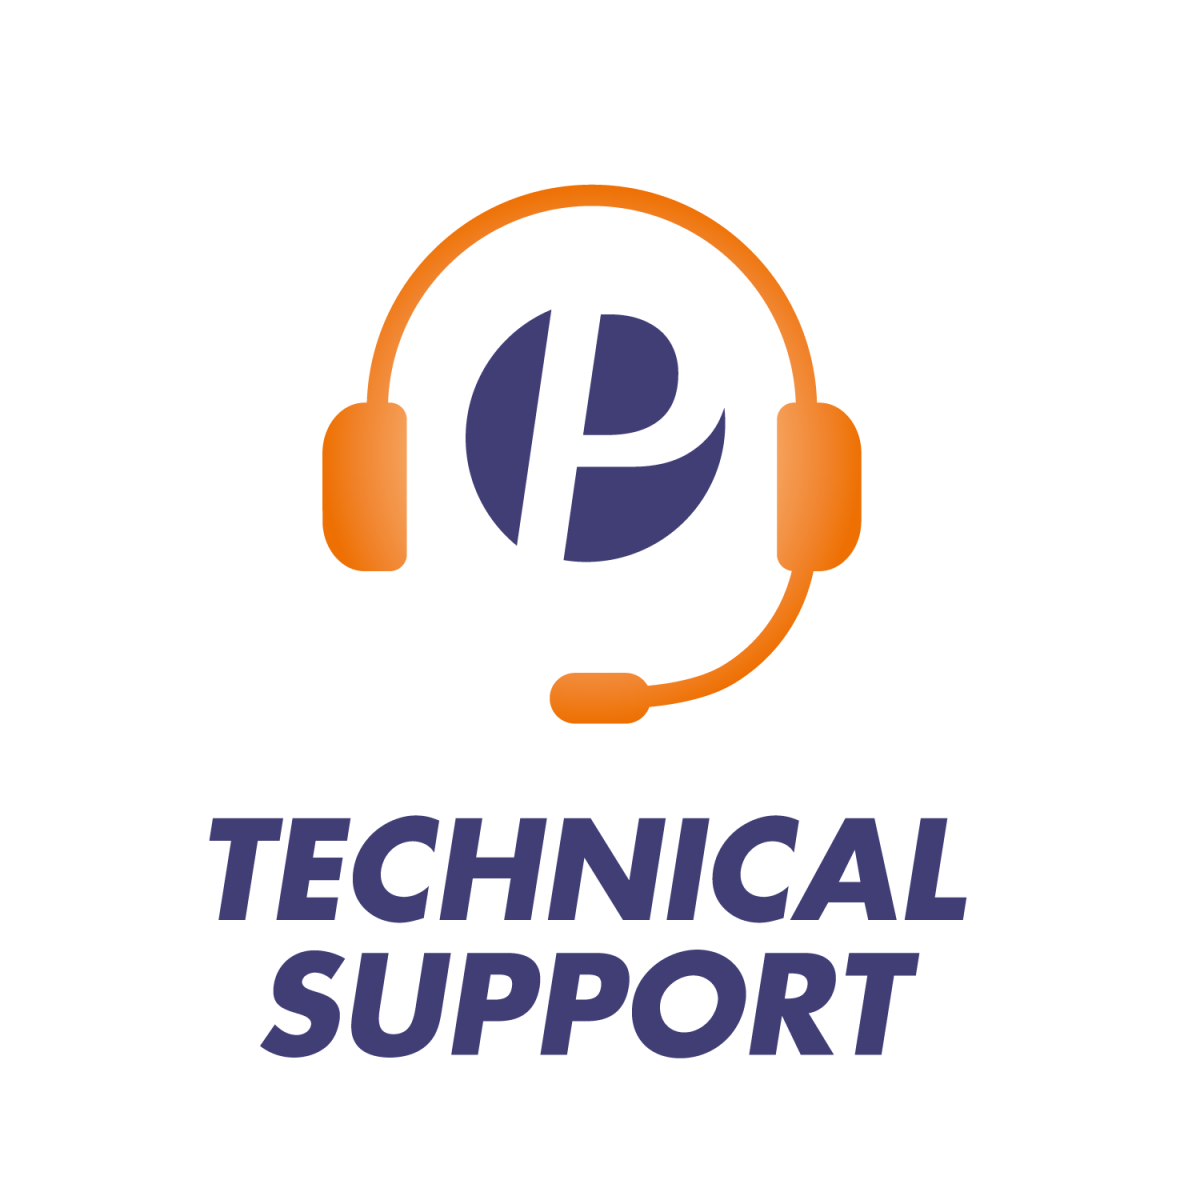 TECHNICAL SUPPORT - LOGO